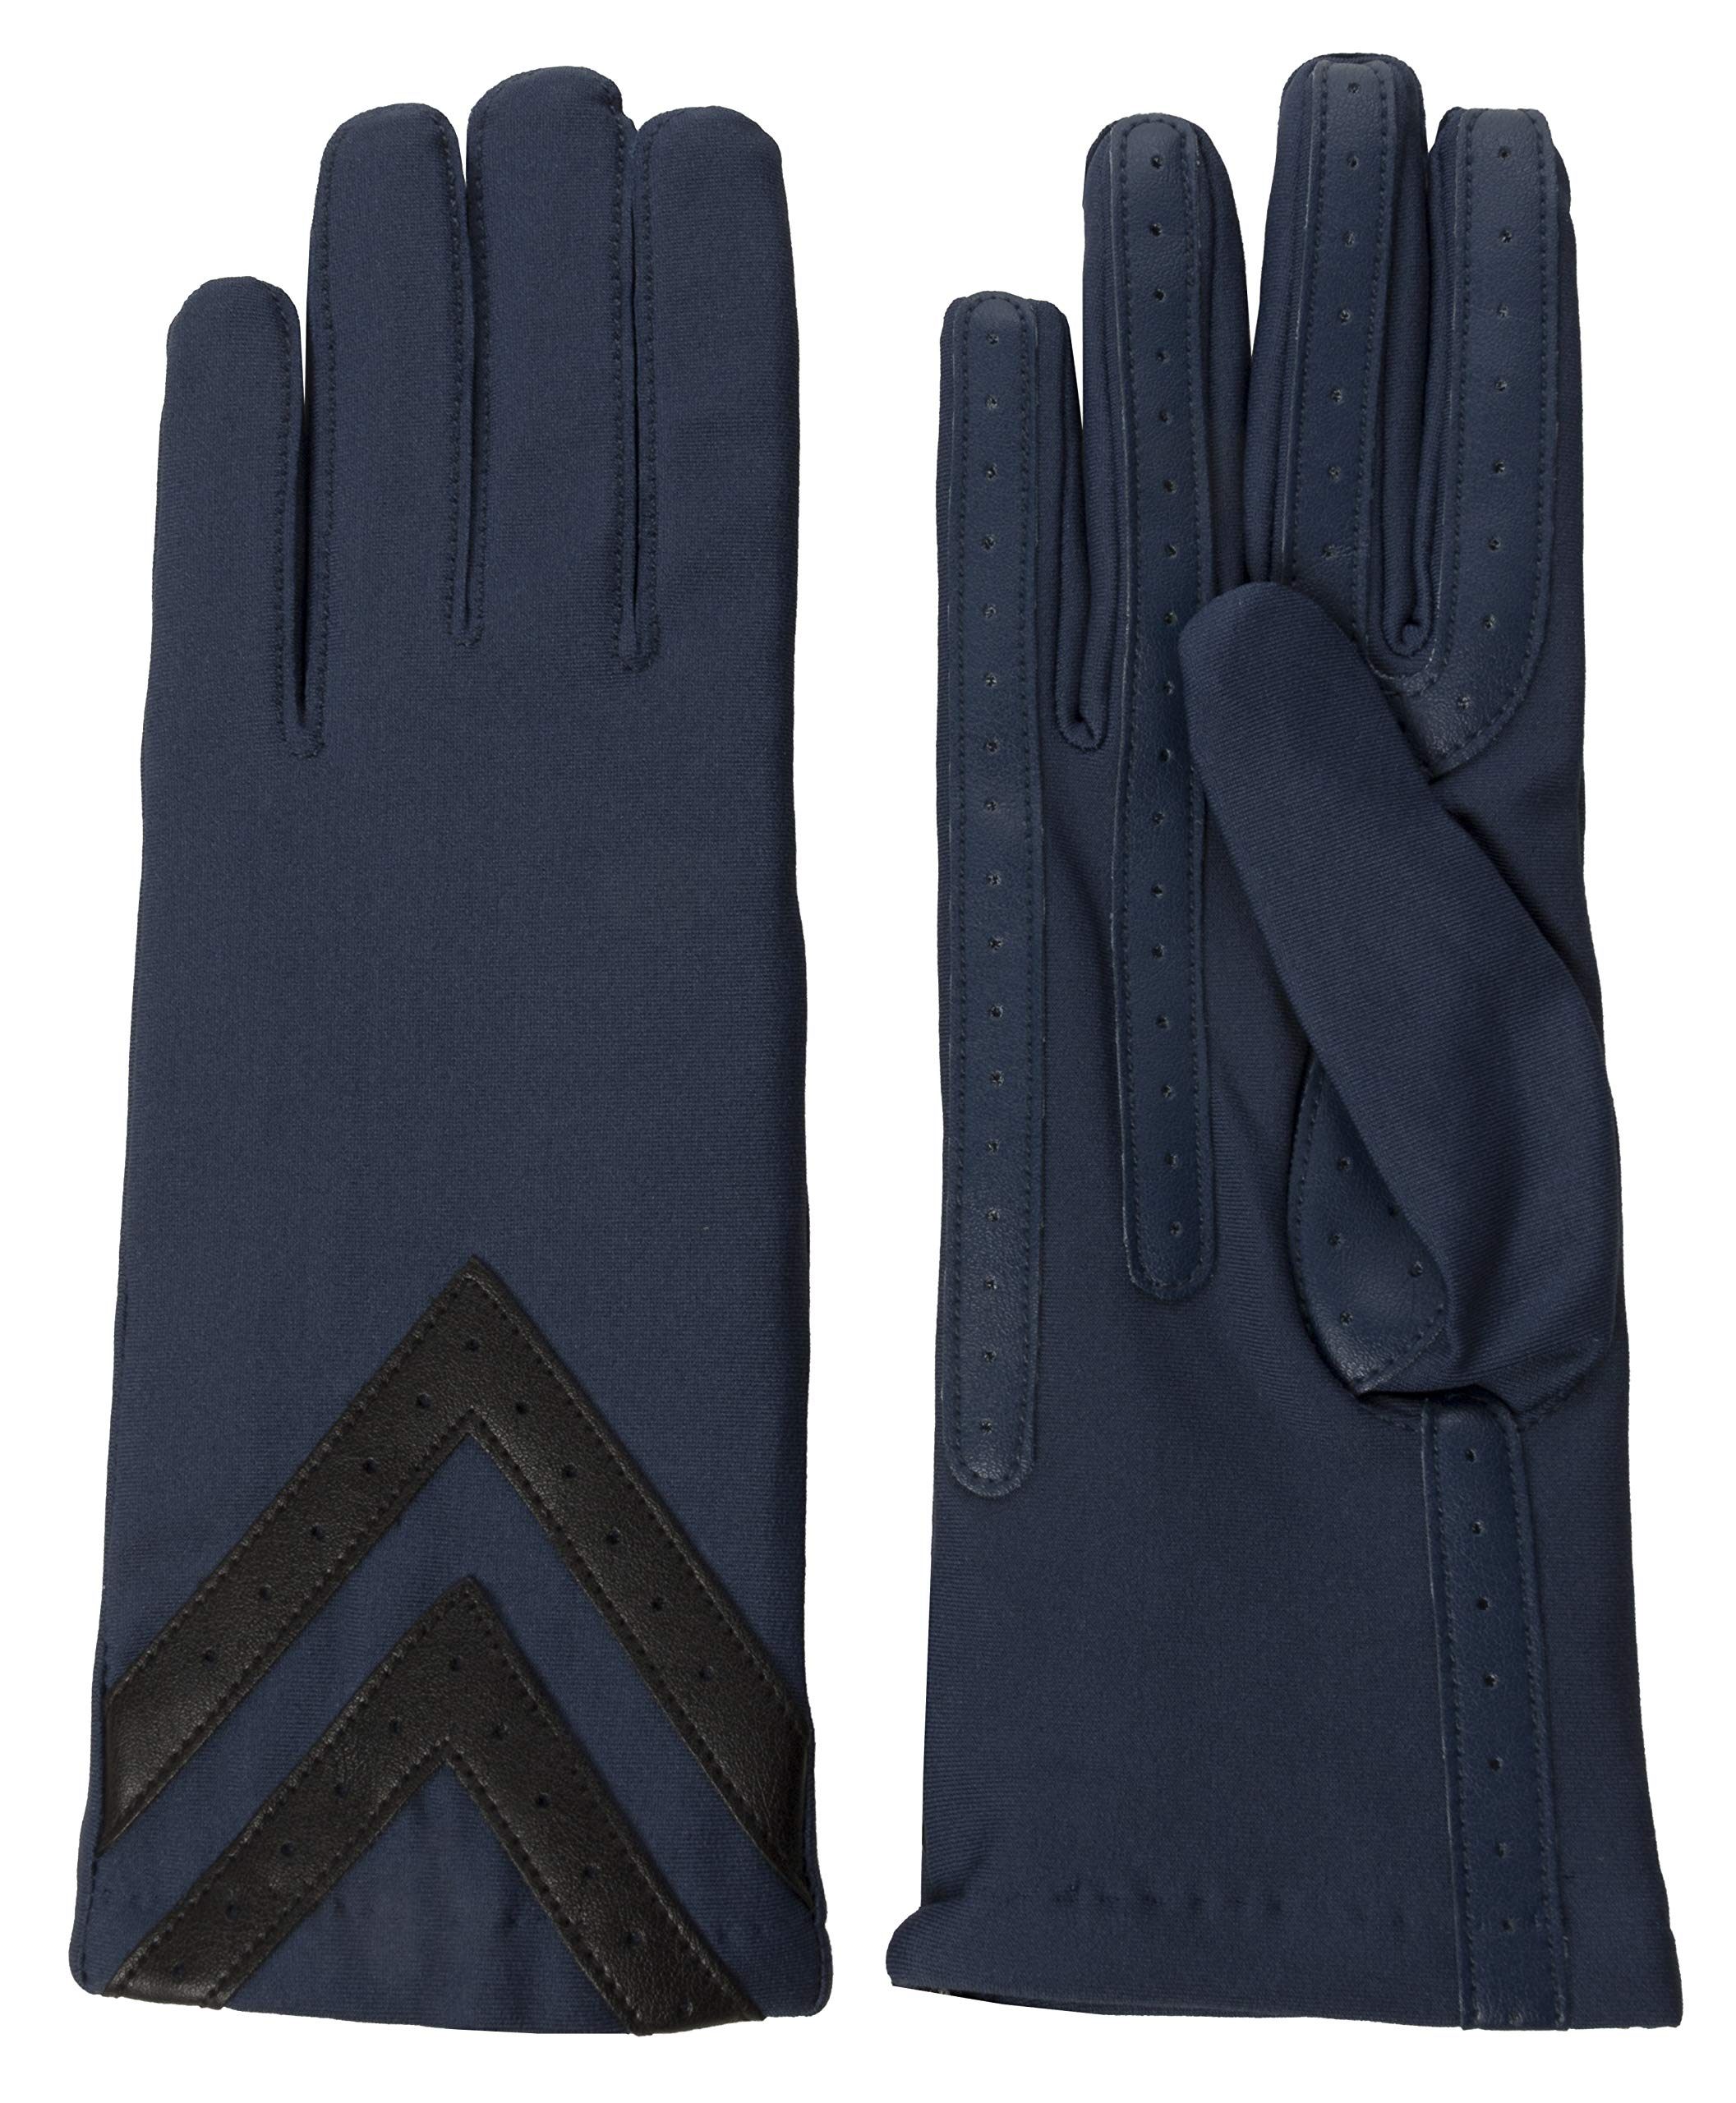 Isotoner Classic Stretch Tech Touch Gloves, Admiral Blue, Large/Extra Large by ISOTONER